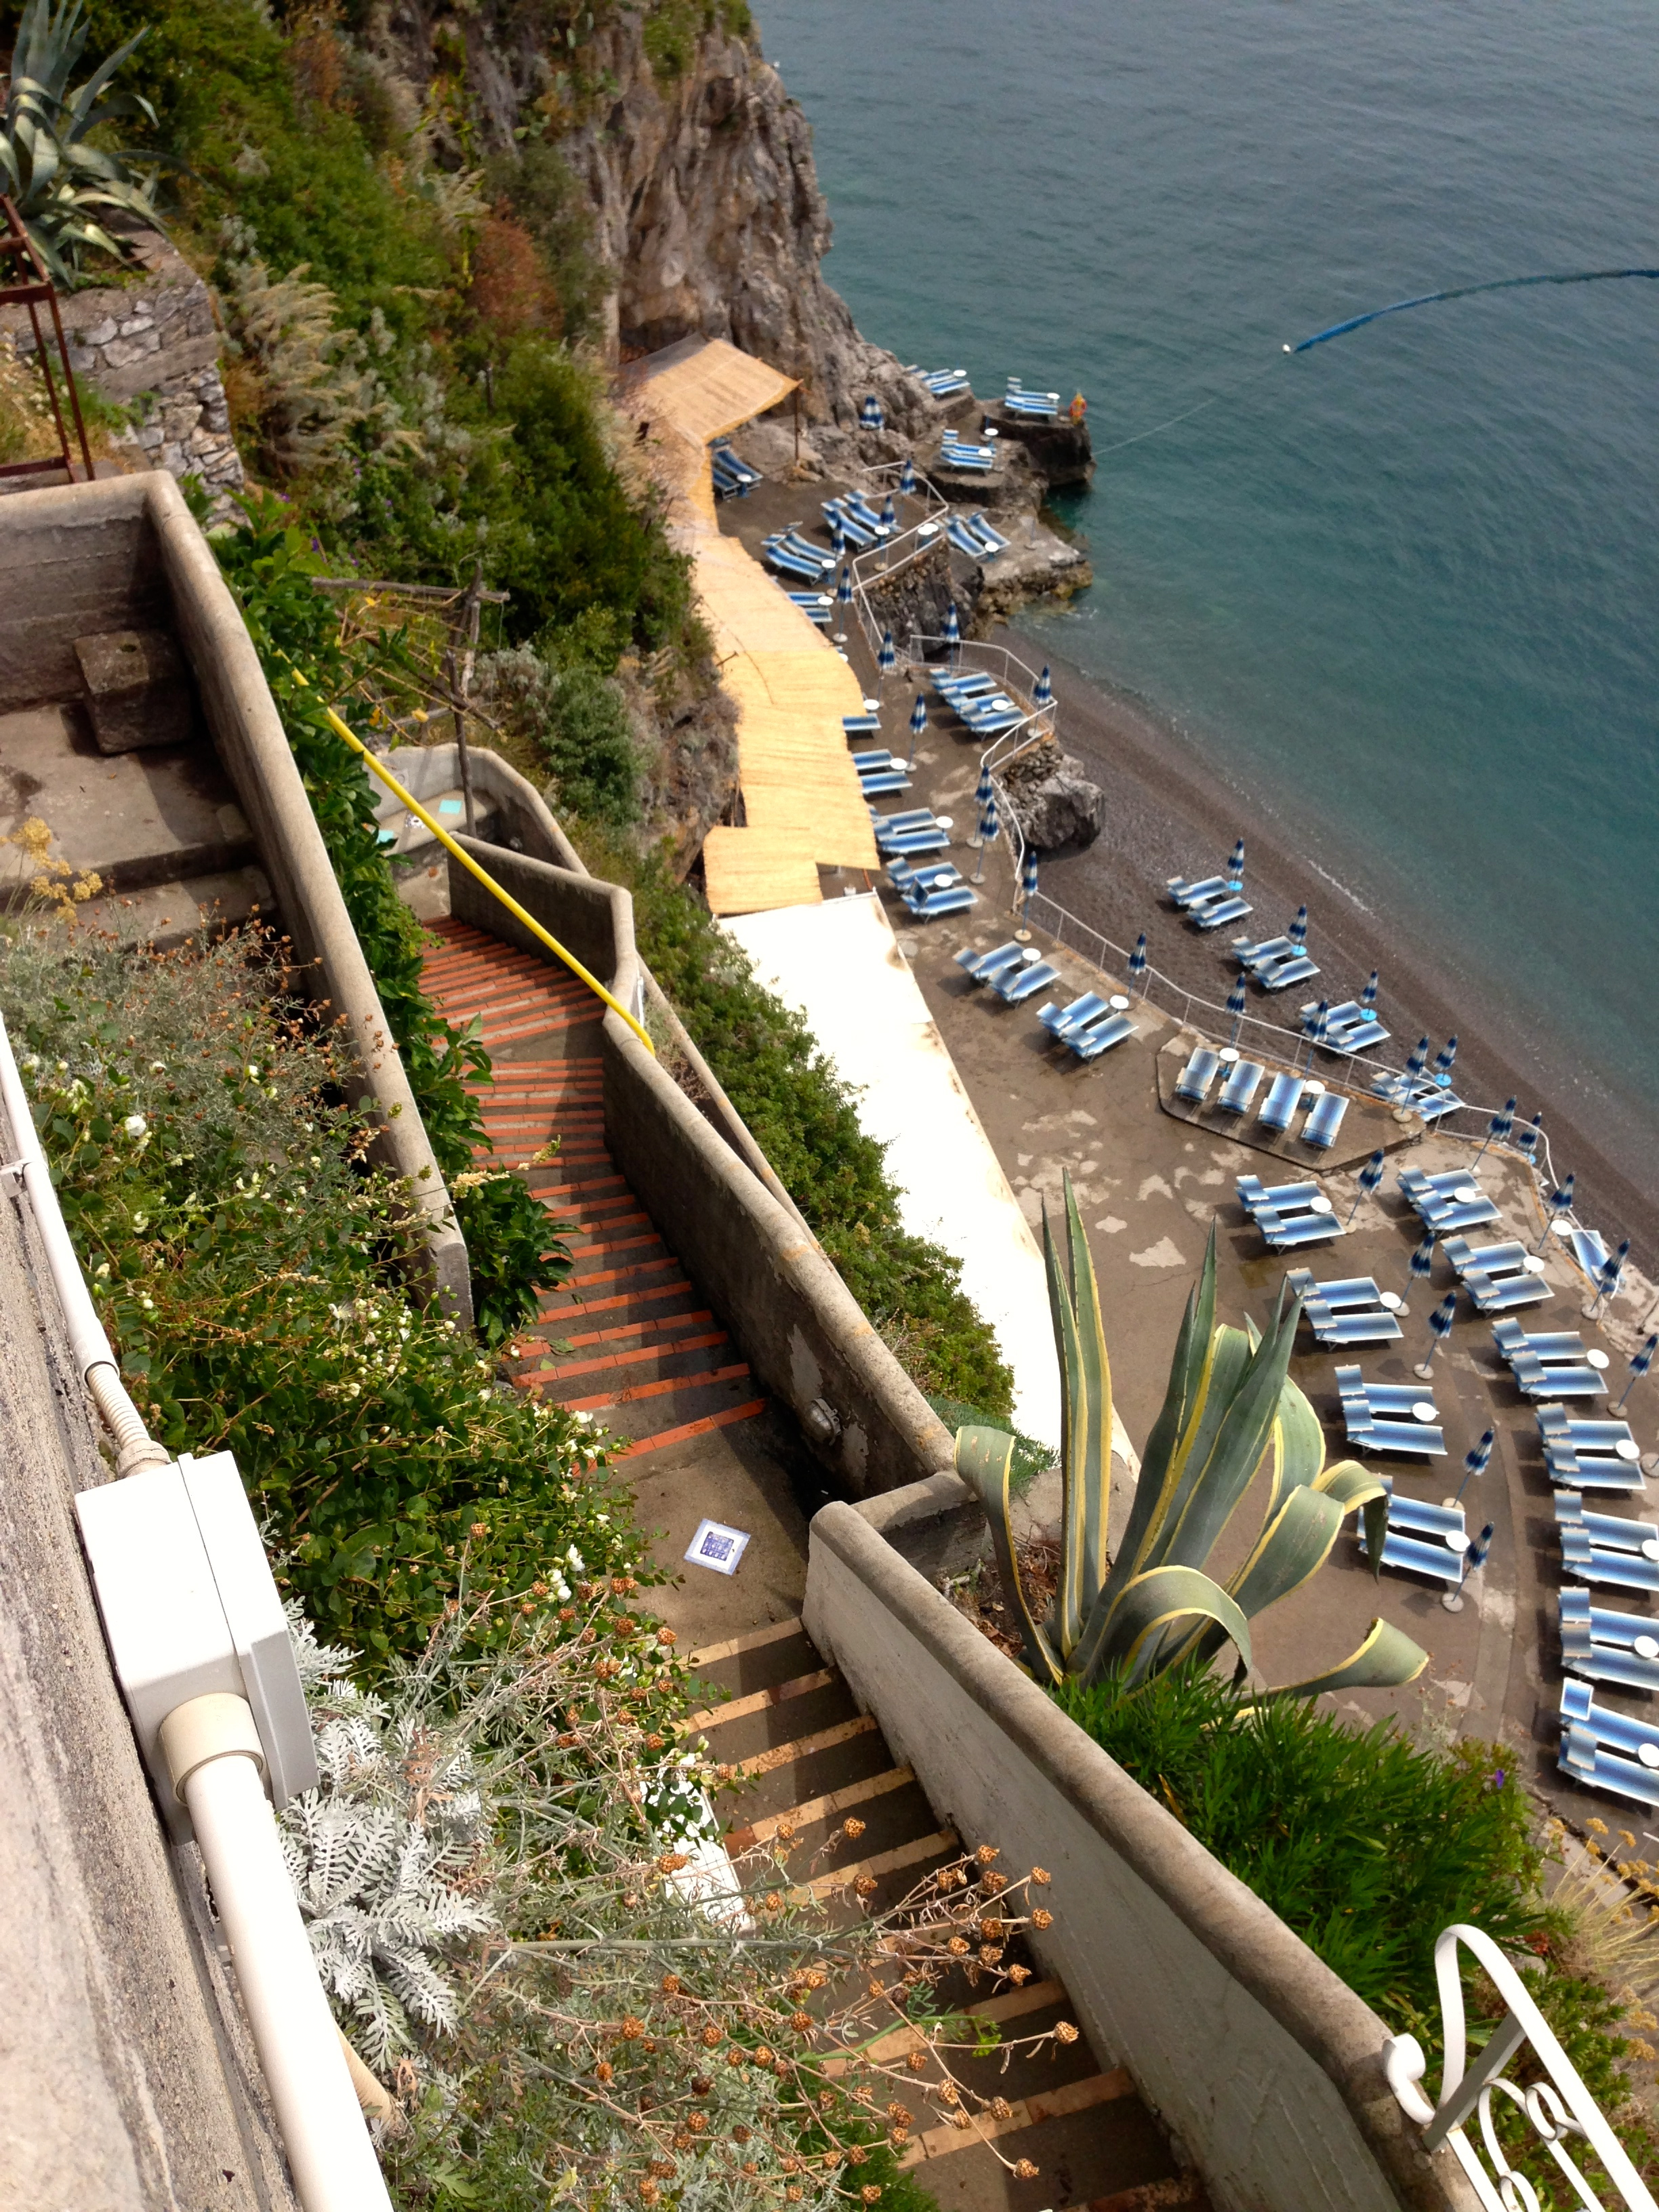 Hotel Marincanto Positano Stairs down to Beach